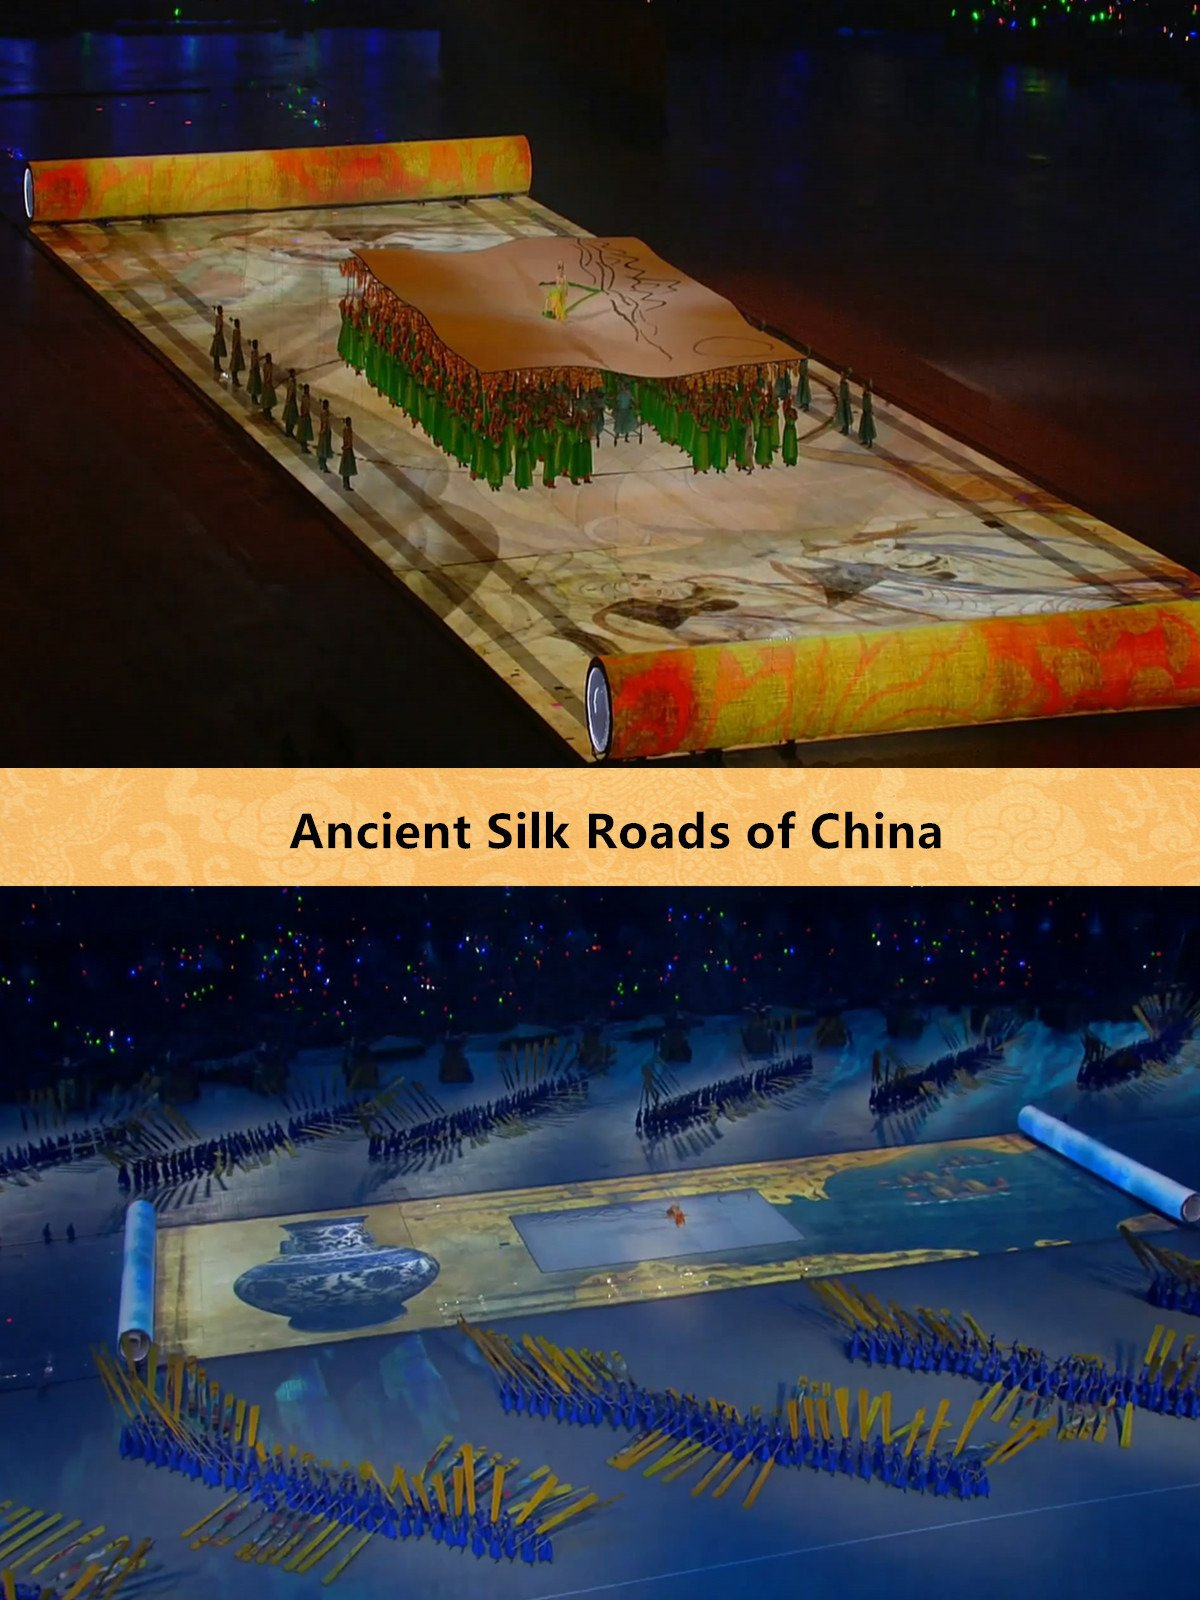 Clip: Ancient Silk Roads of China